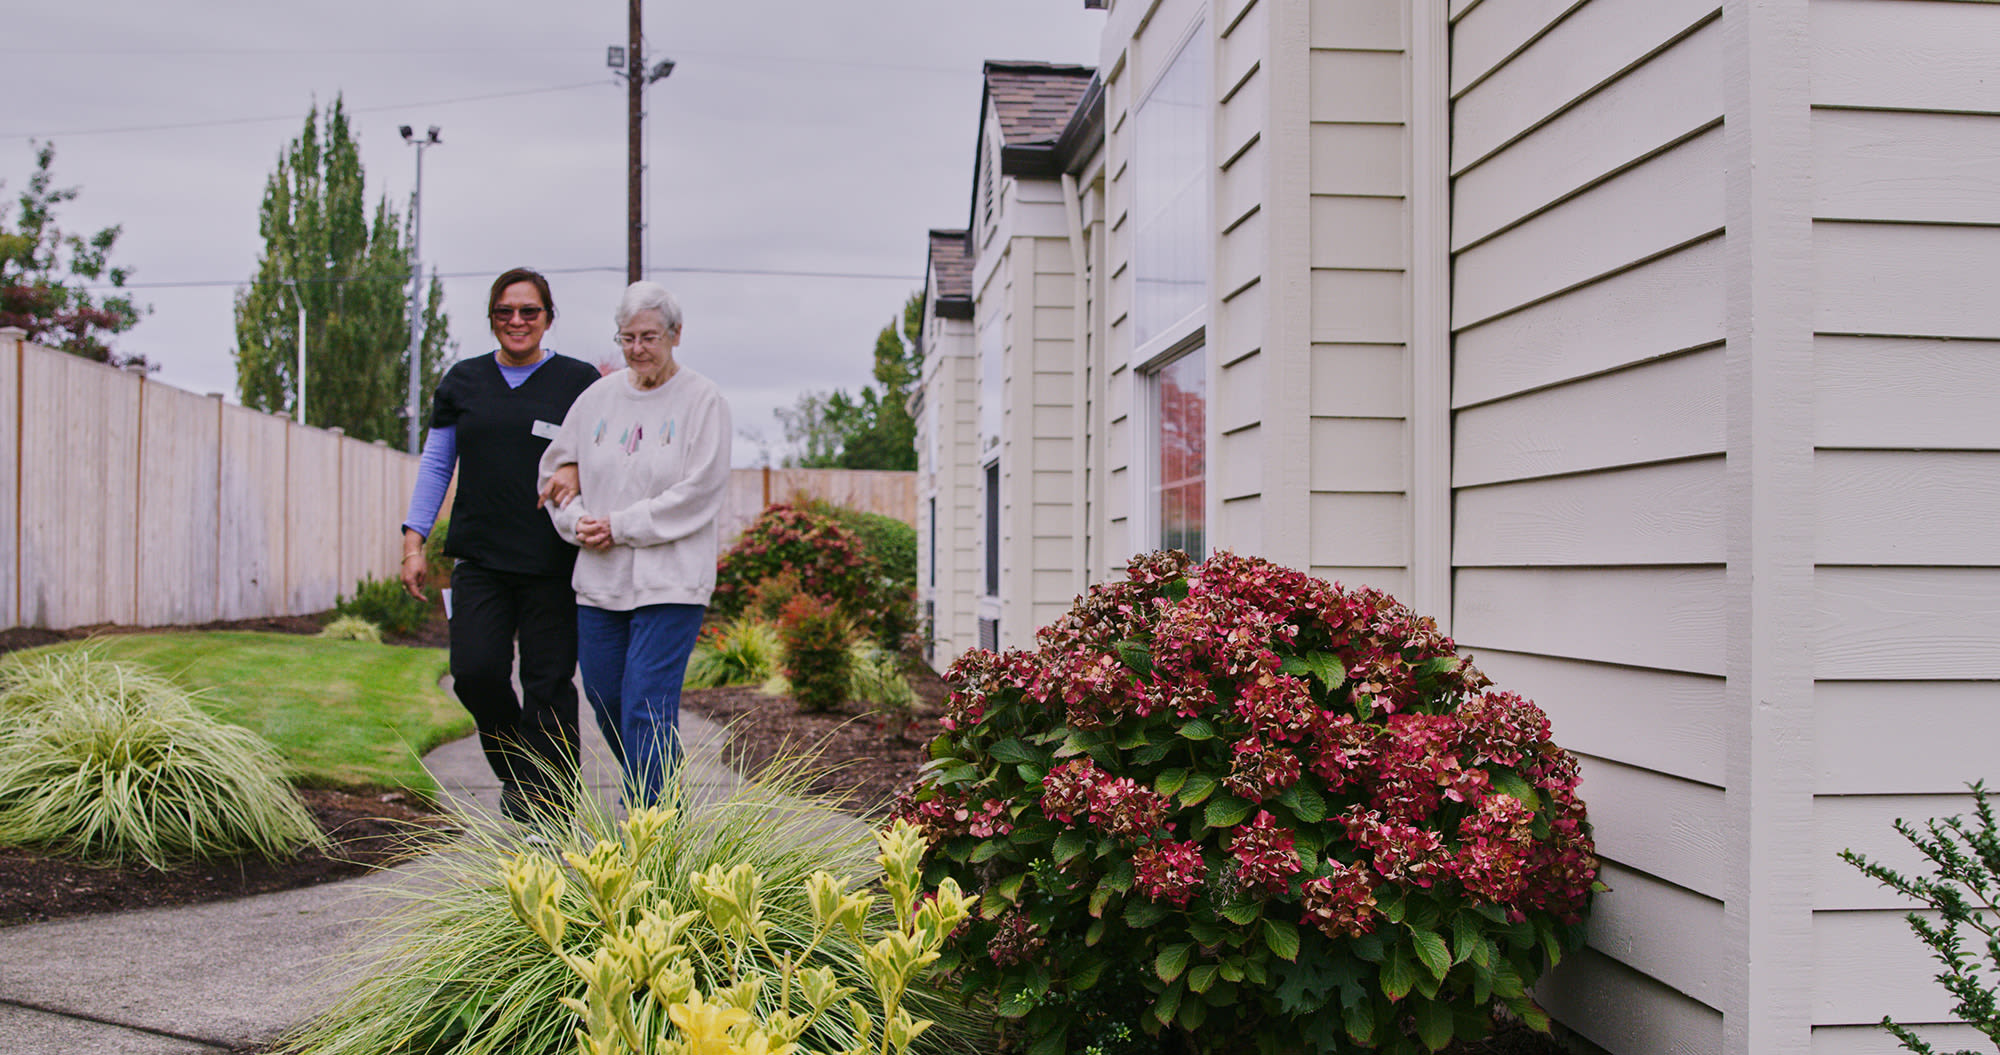 resident and a caretaker walking outside at Ashley Pointe in Lake Stevens, Washington